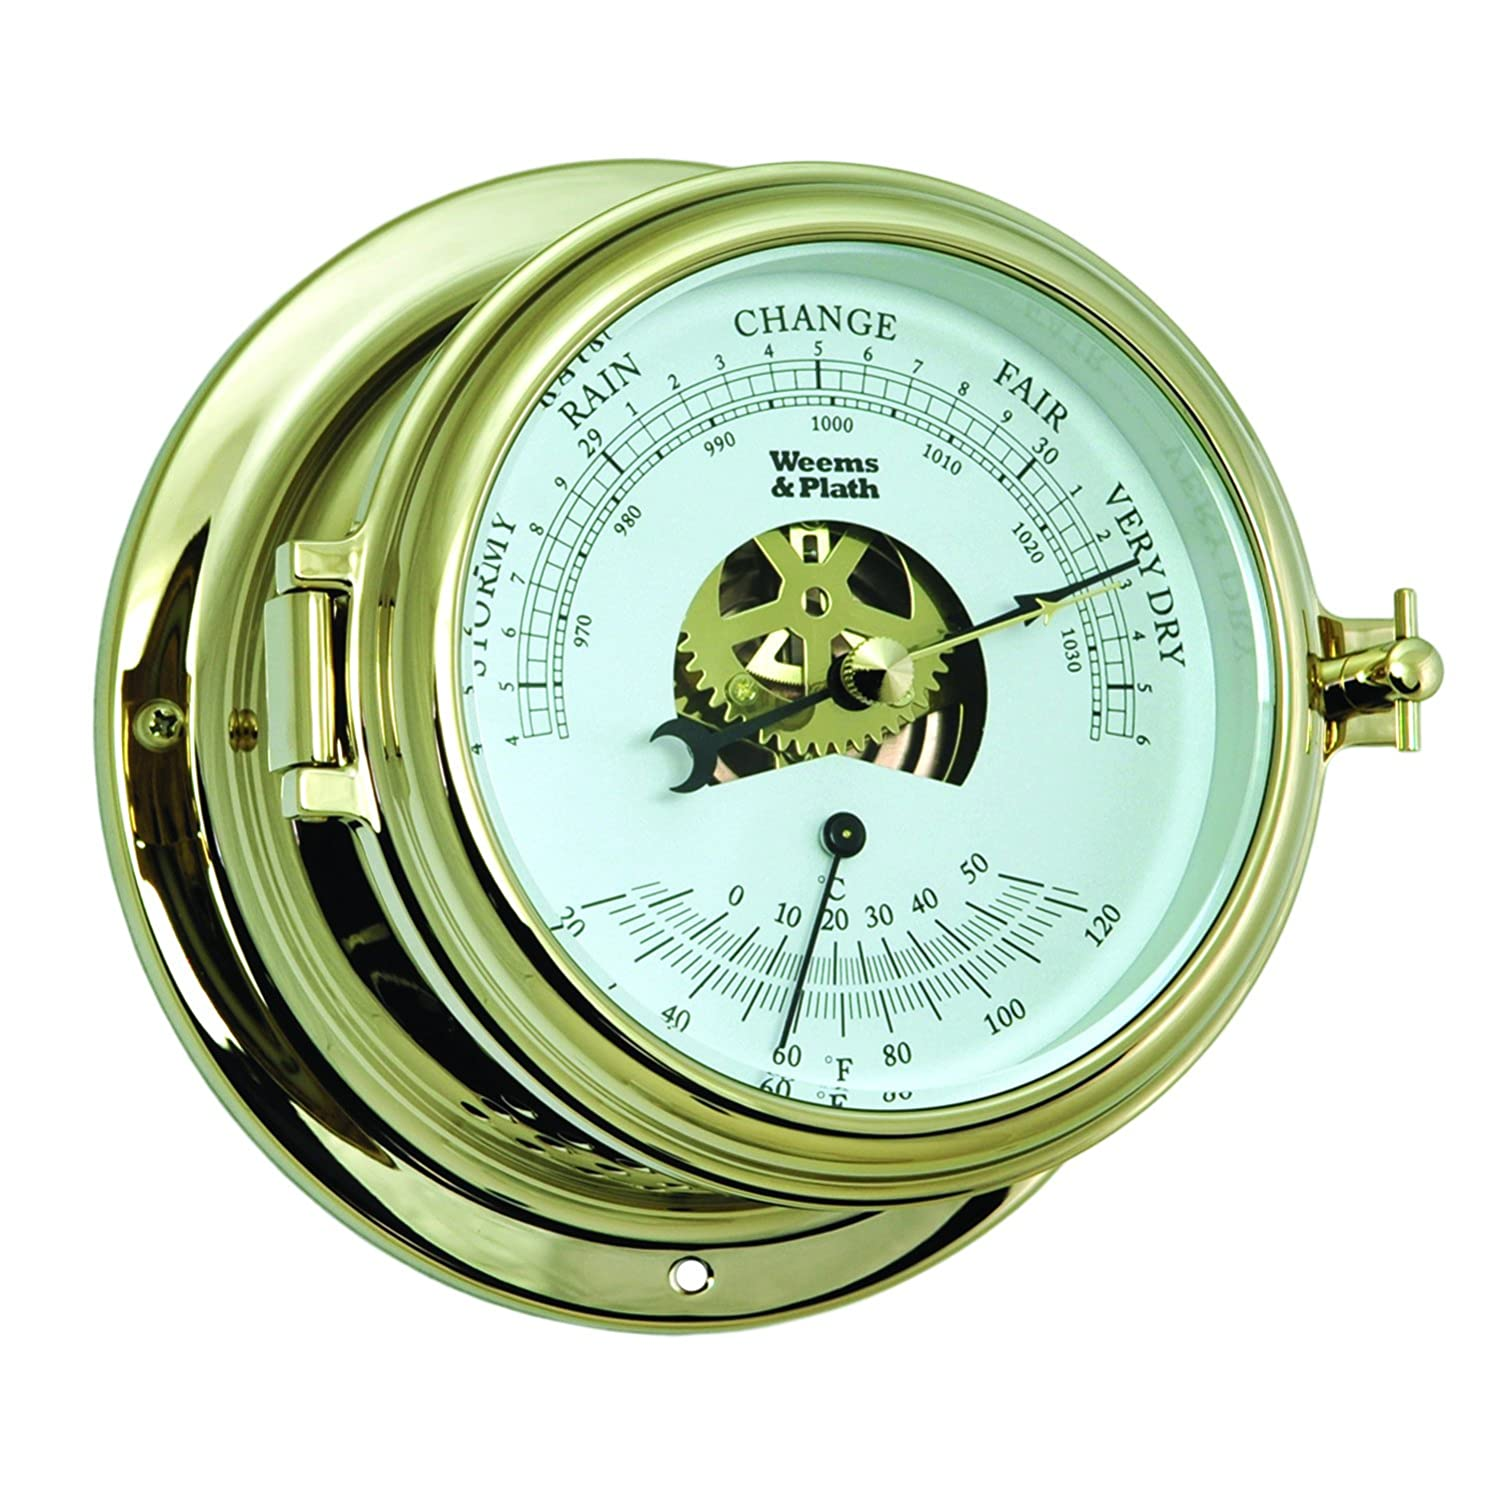 Weems and Plath Endurance II 115 Barometer/Thermometer Brass 511000